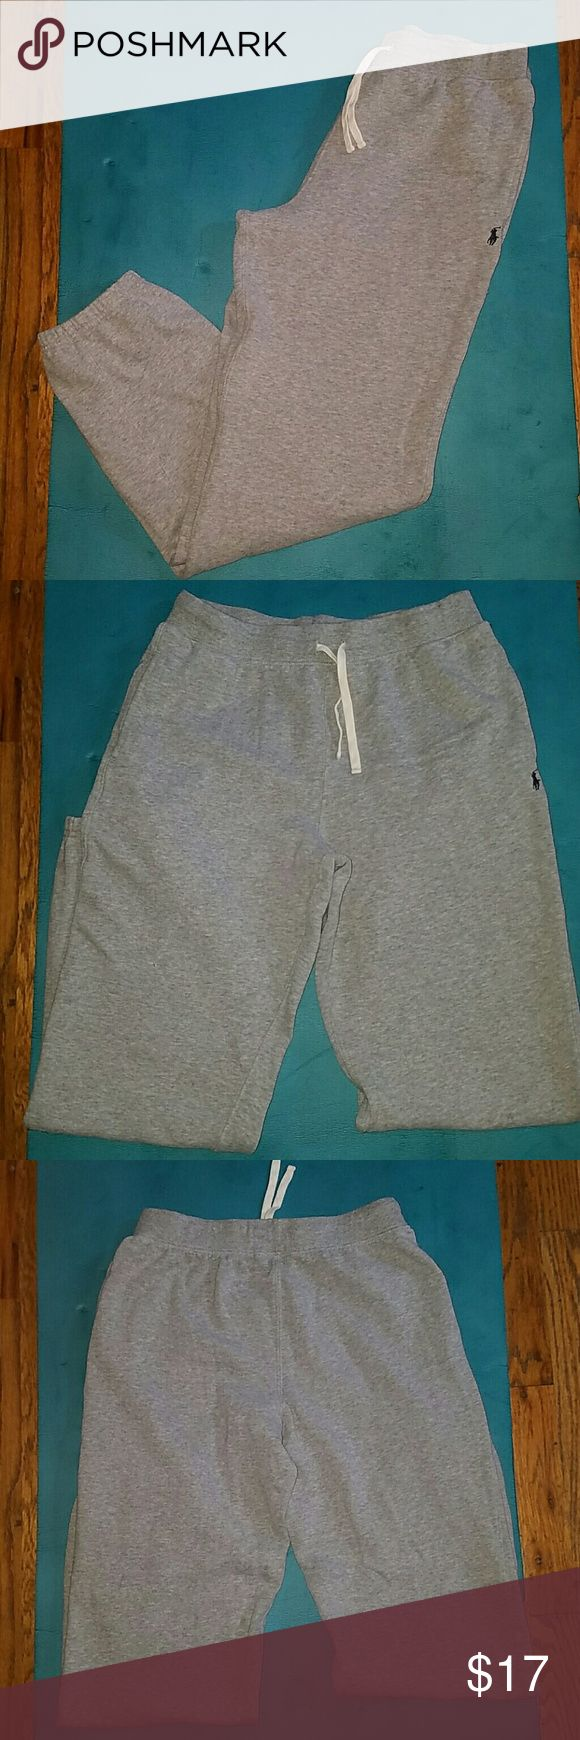 Boys Ralph Lauren Gray Polo Sweatpants Size XL These are practically brand new boys Ralph Lauren Gray Polo Sweatpants Size XL (18-20) worn twice. The pants have the navy blue Polo horse on the left leg as well as a drawstring in the waist. Ralph Lauren Bottoms Sweatpants & Joggers